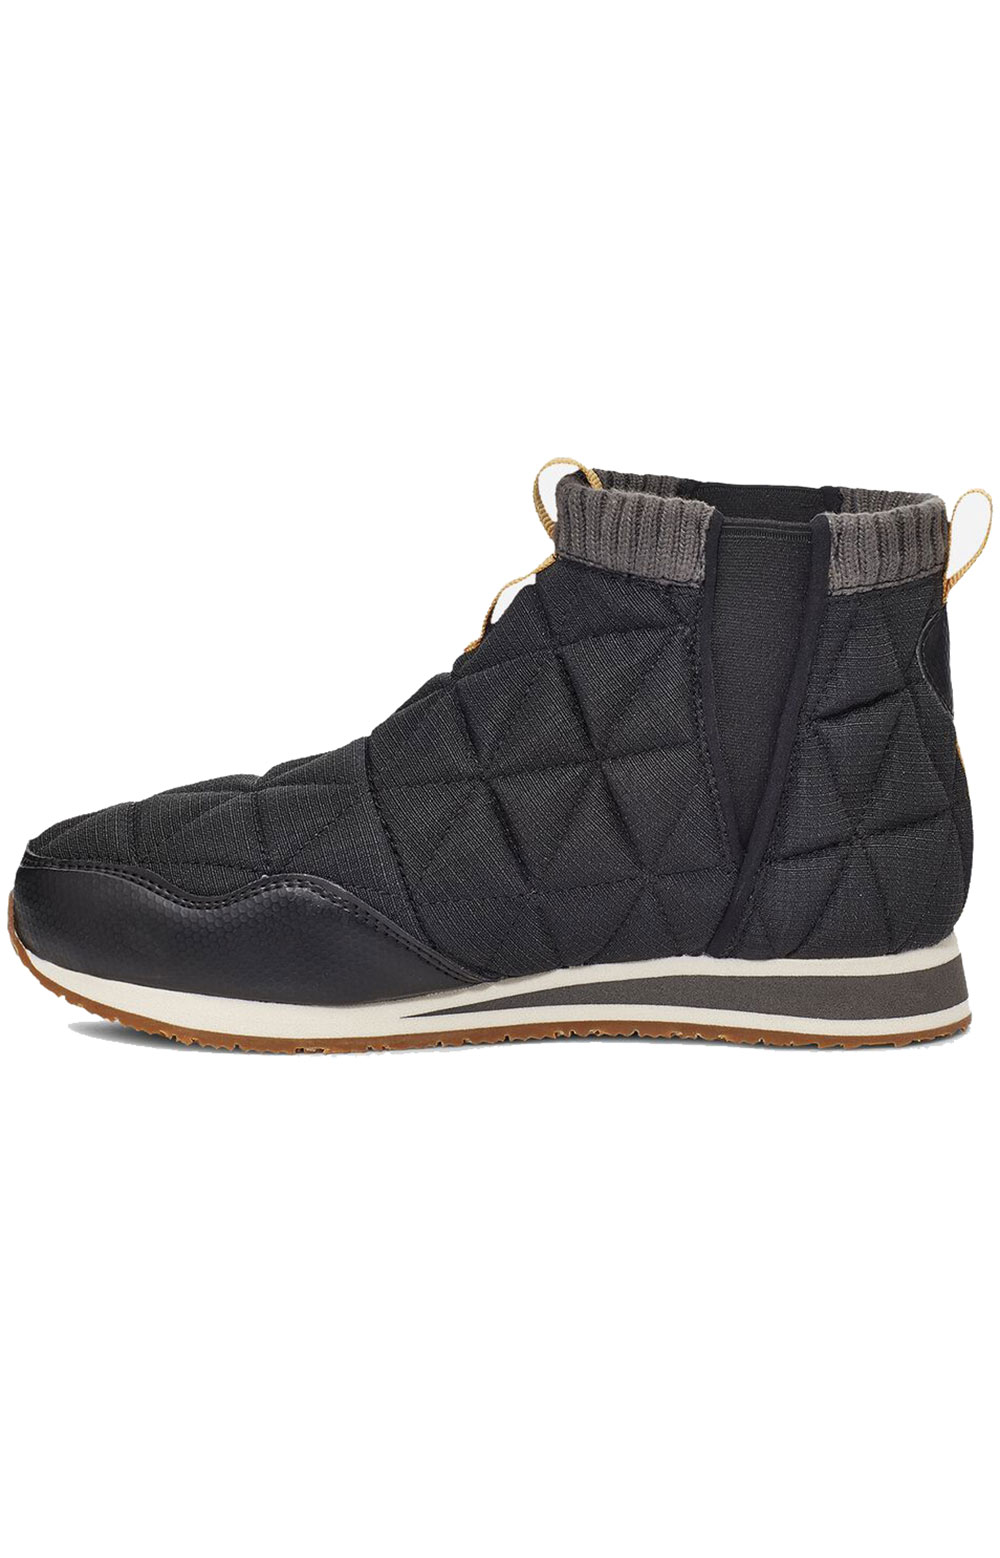 (1123431) ReEMBER Mid Shoes - Black 3